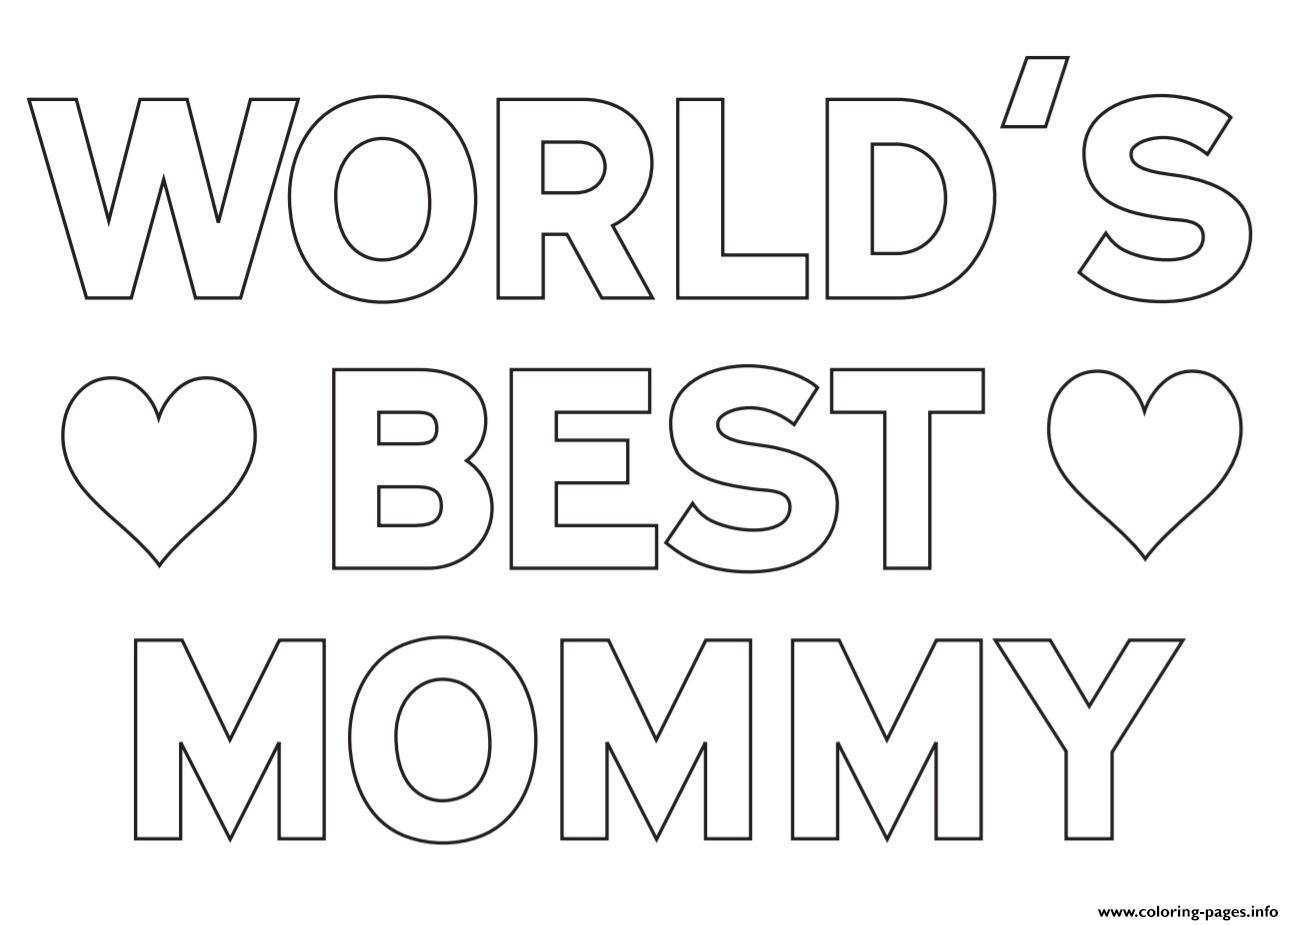 Mommy Coloring Pages Worlds Best Mommy Mom Coloring Pages Printable